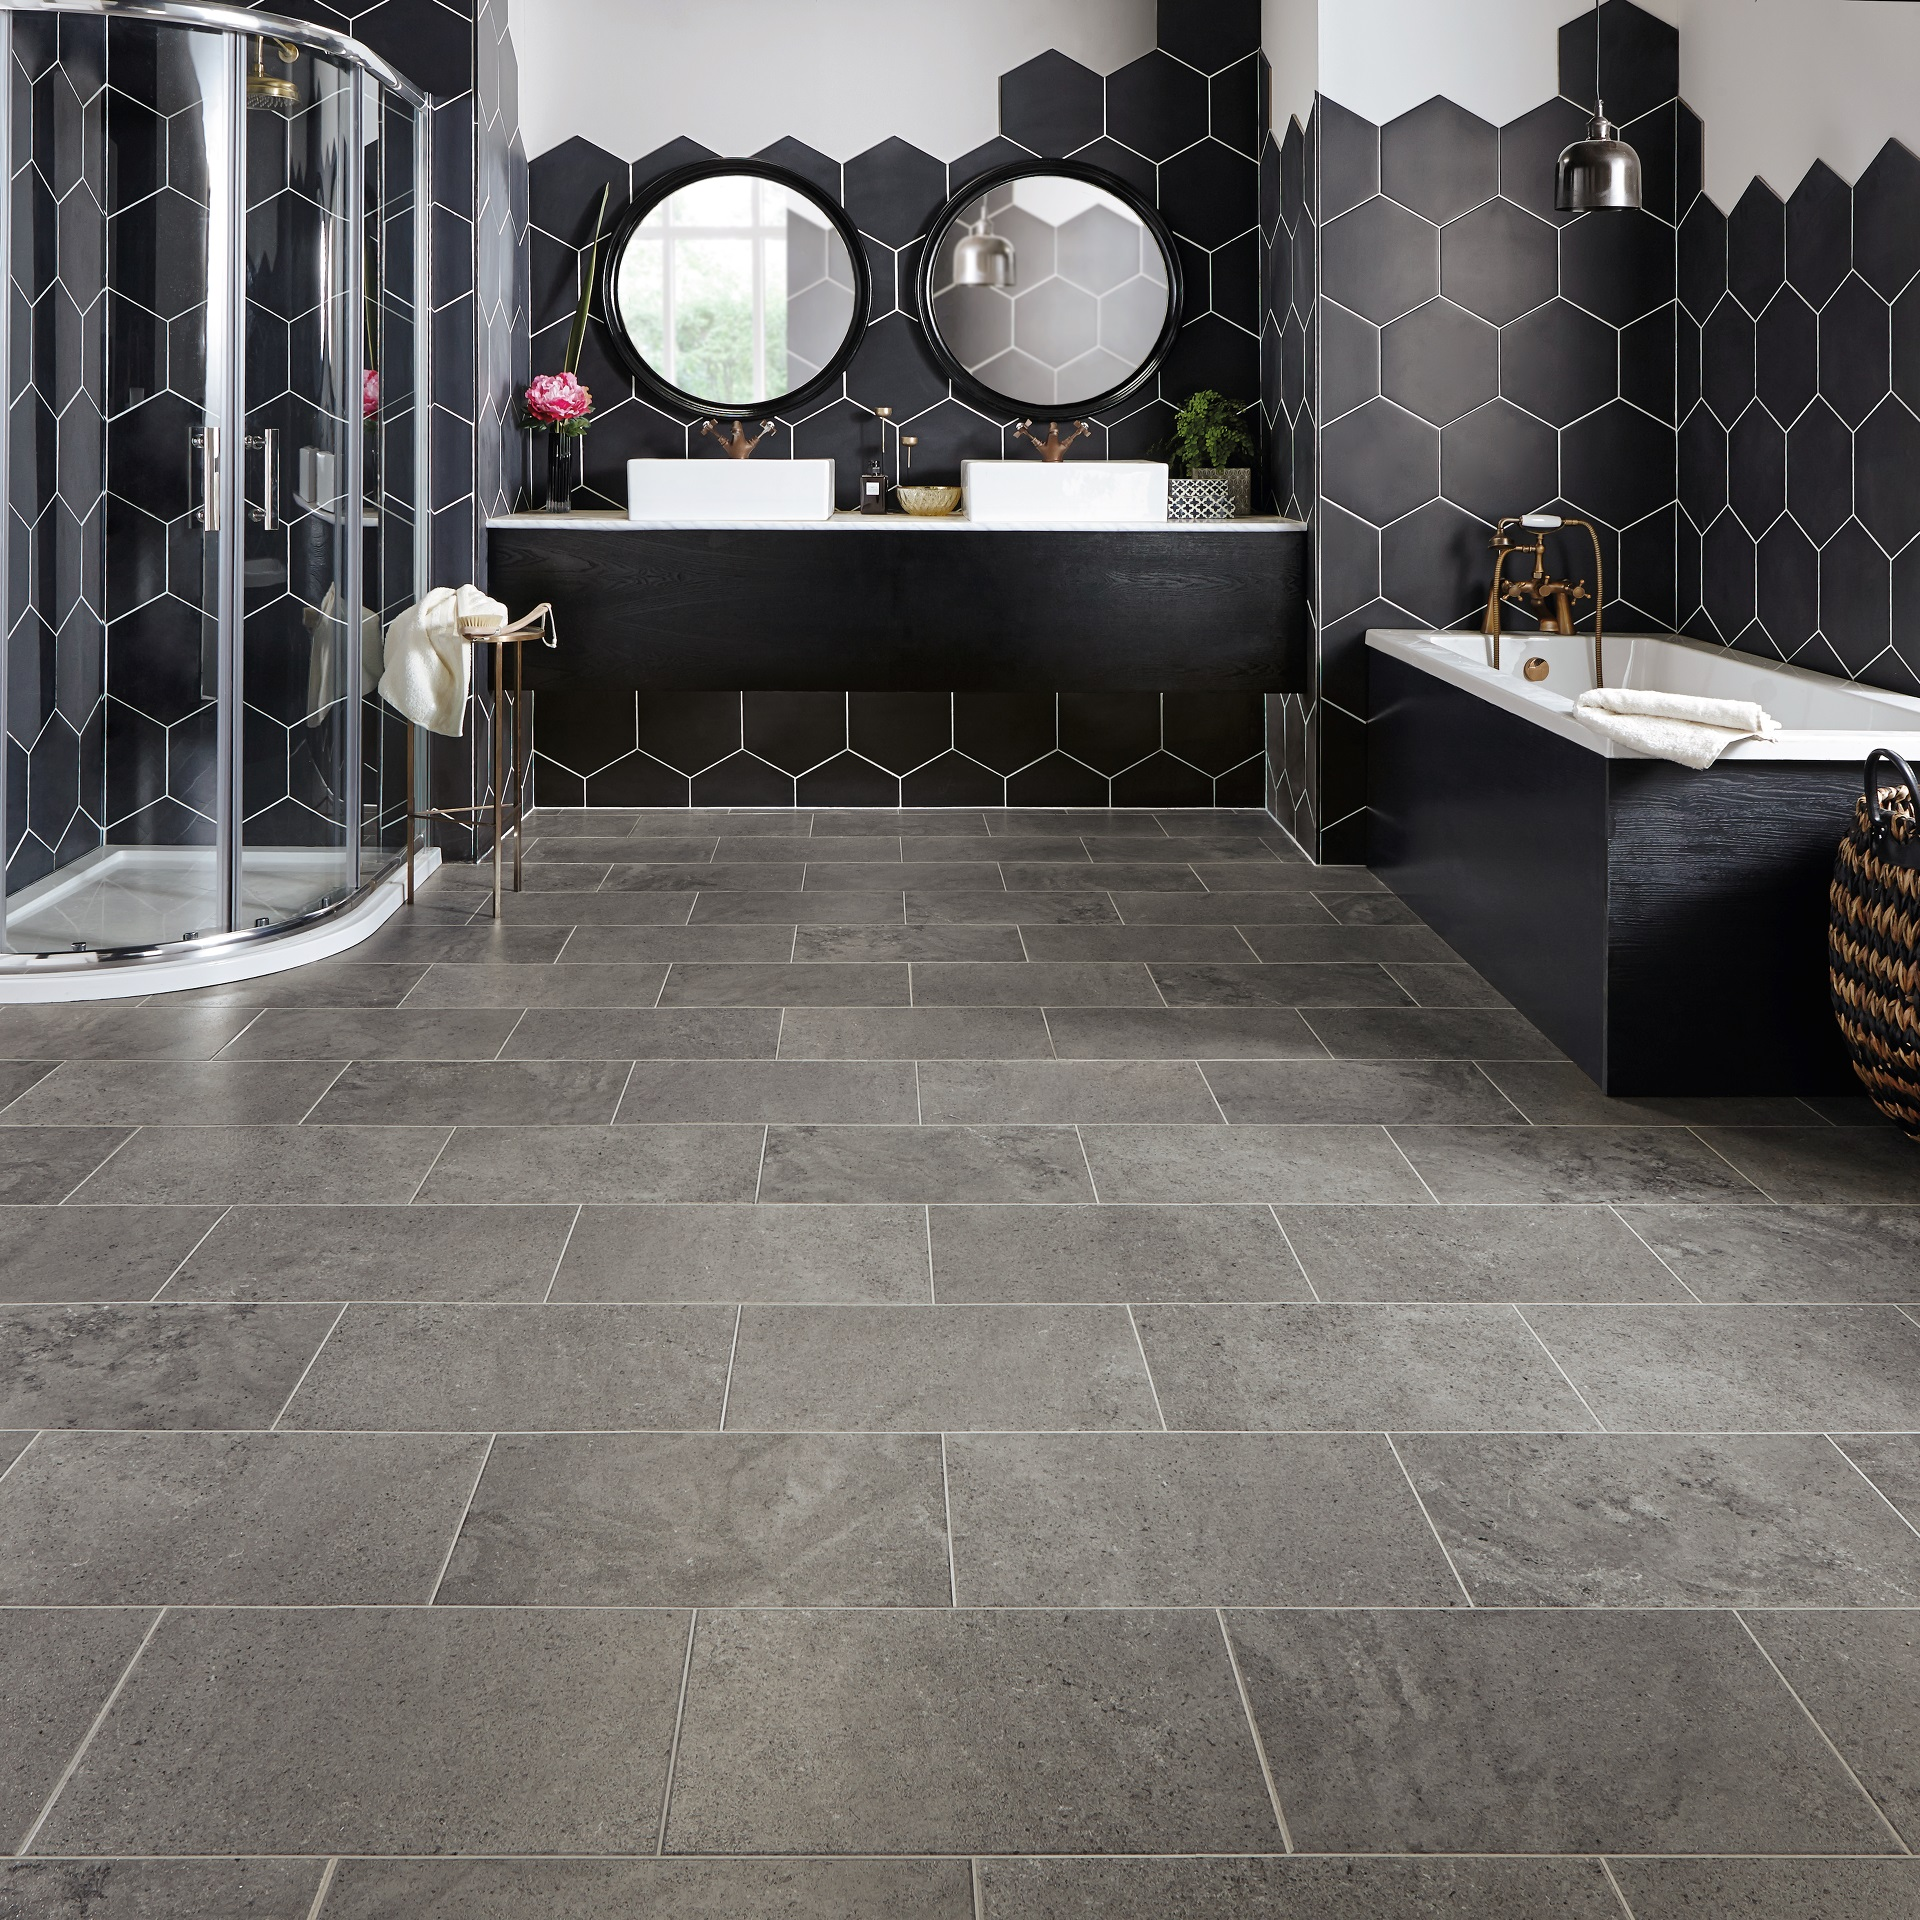 Bathroom flooring cer17 drift HHDBLKQ